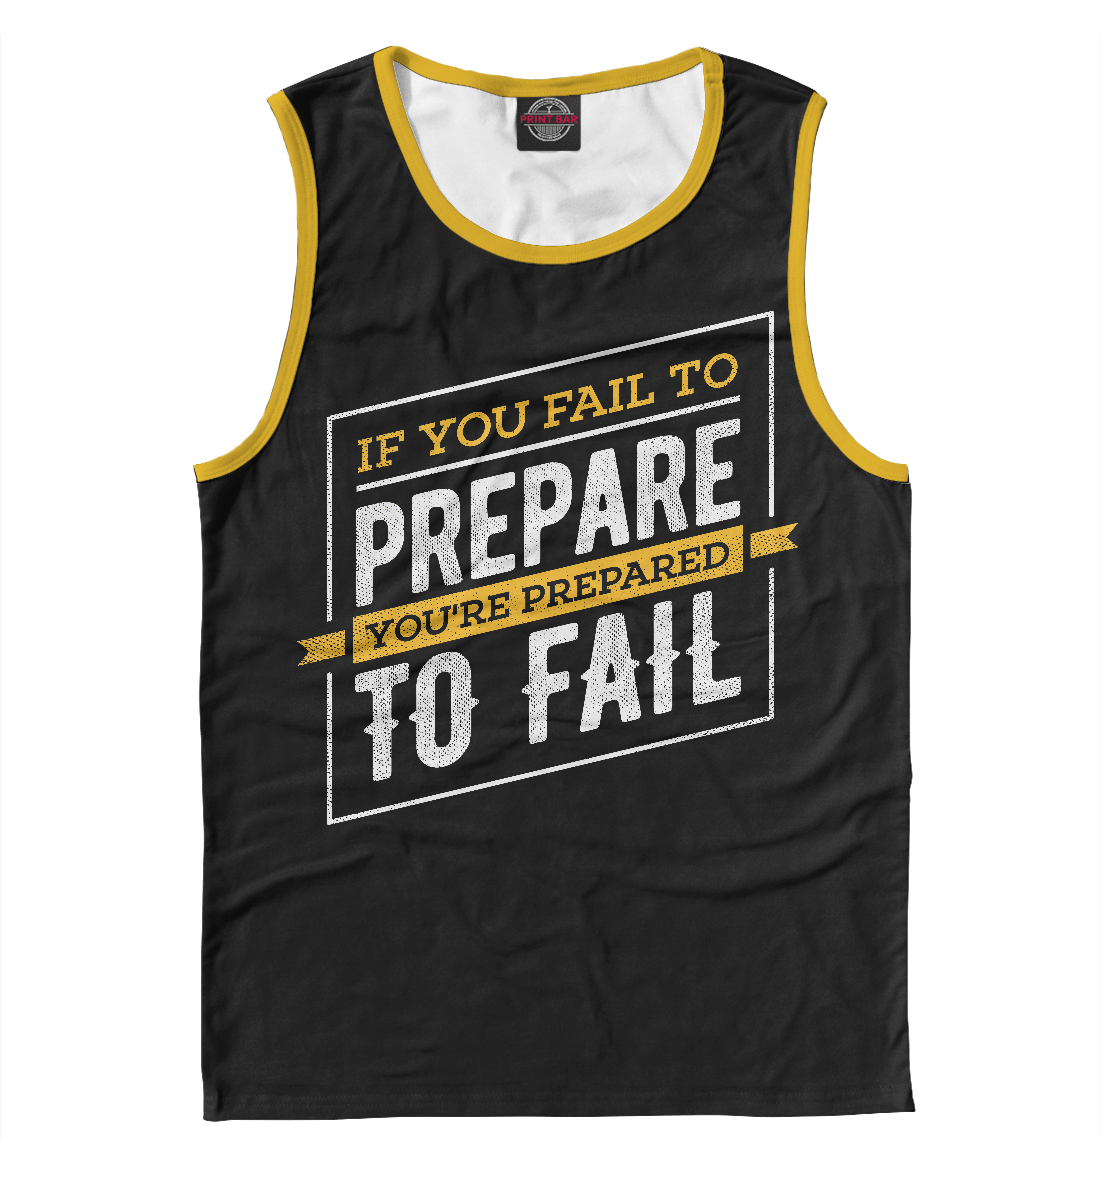 If you fail to prepare you're prepared to fail quick m love may fail